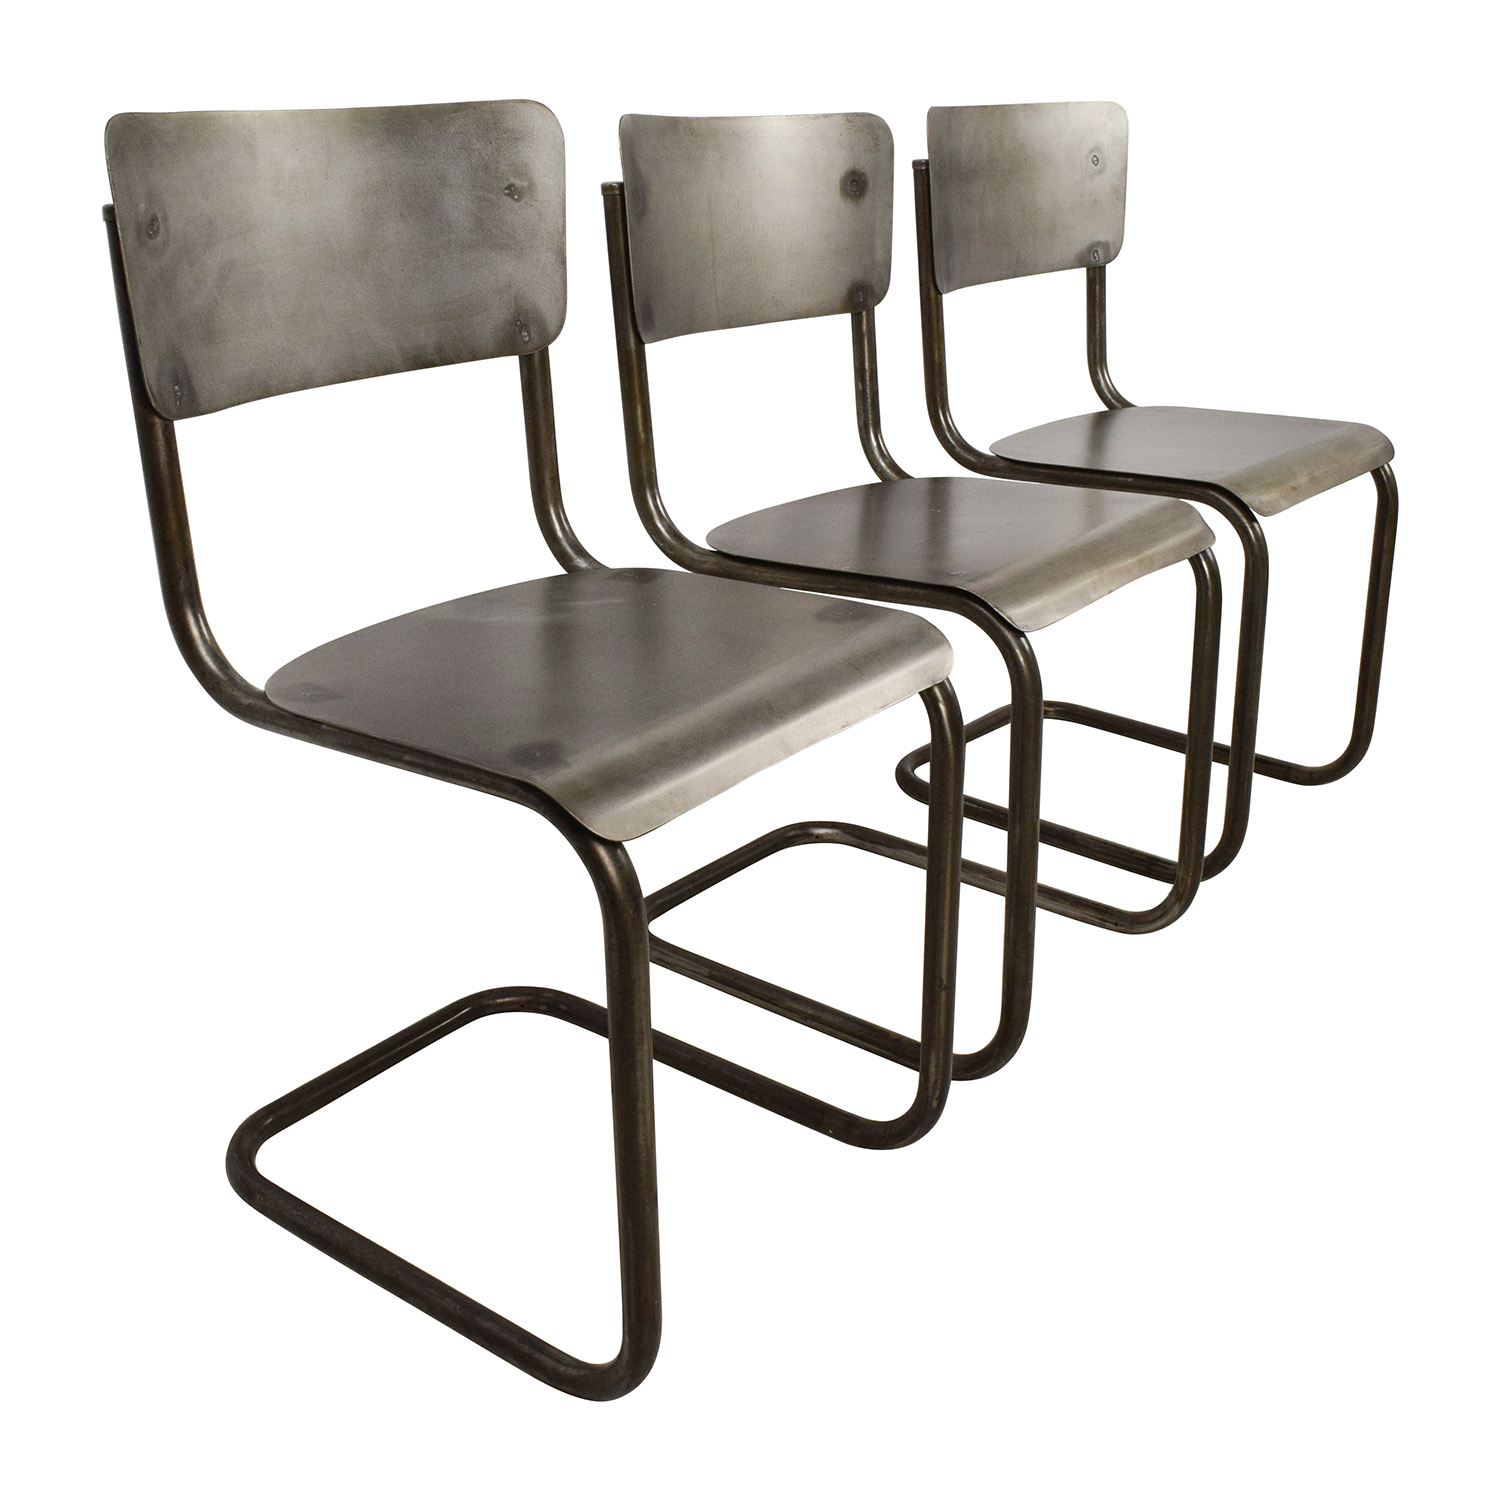 Industrial Look Chairs 68 Off Industrial Style Metal Chair Set Chairs